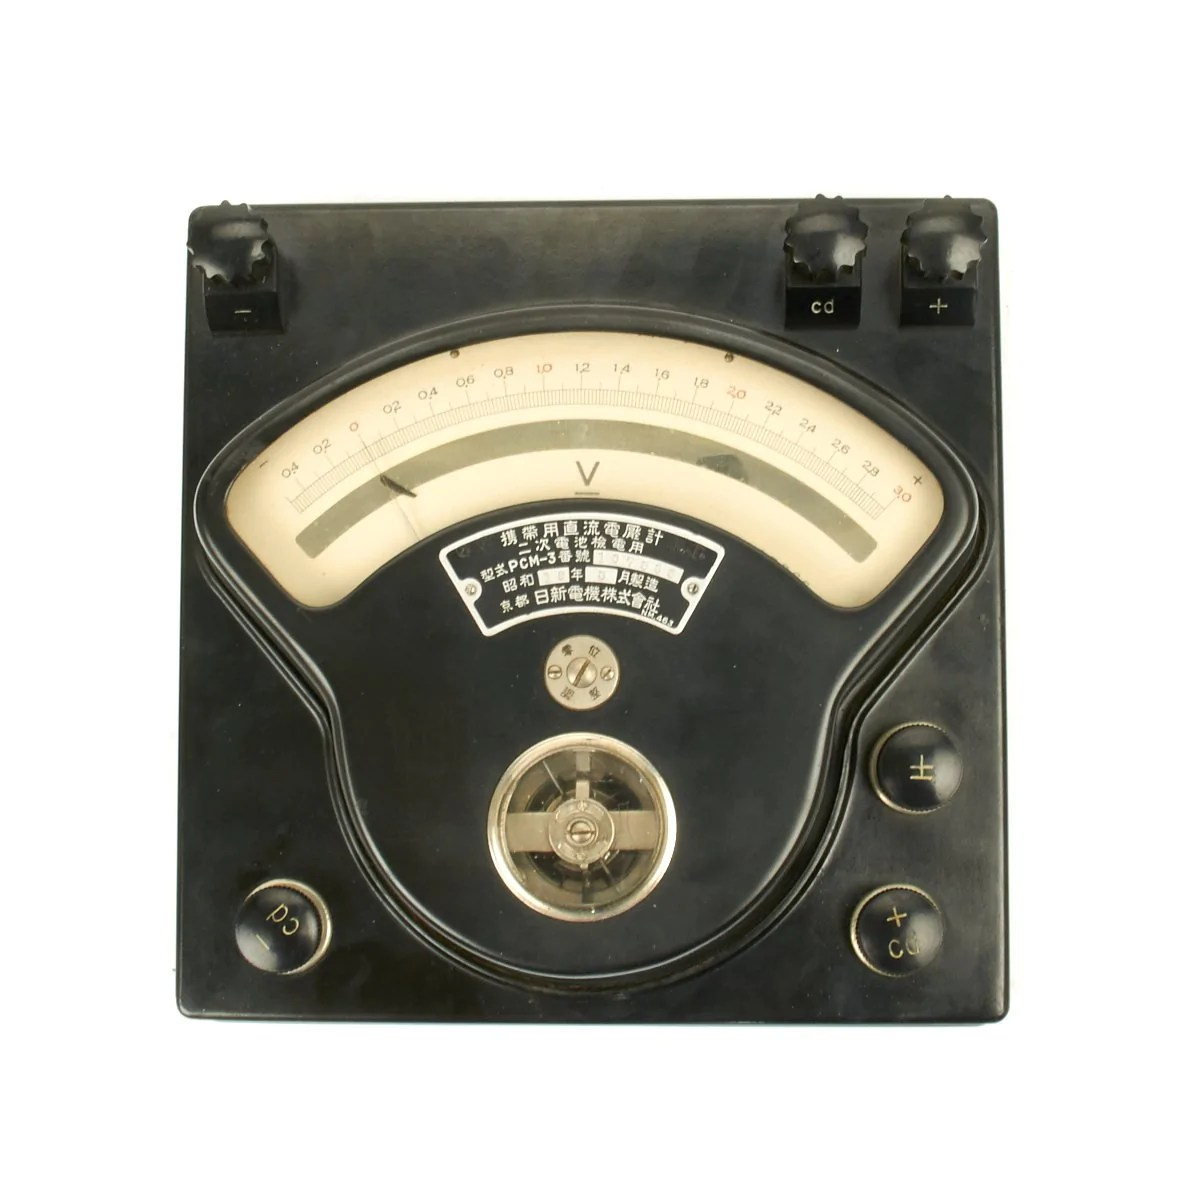 hight resolution of  original japanese wwii navy voltmeter with case with cords and on